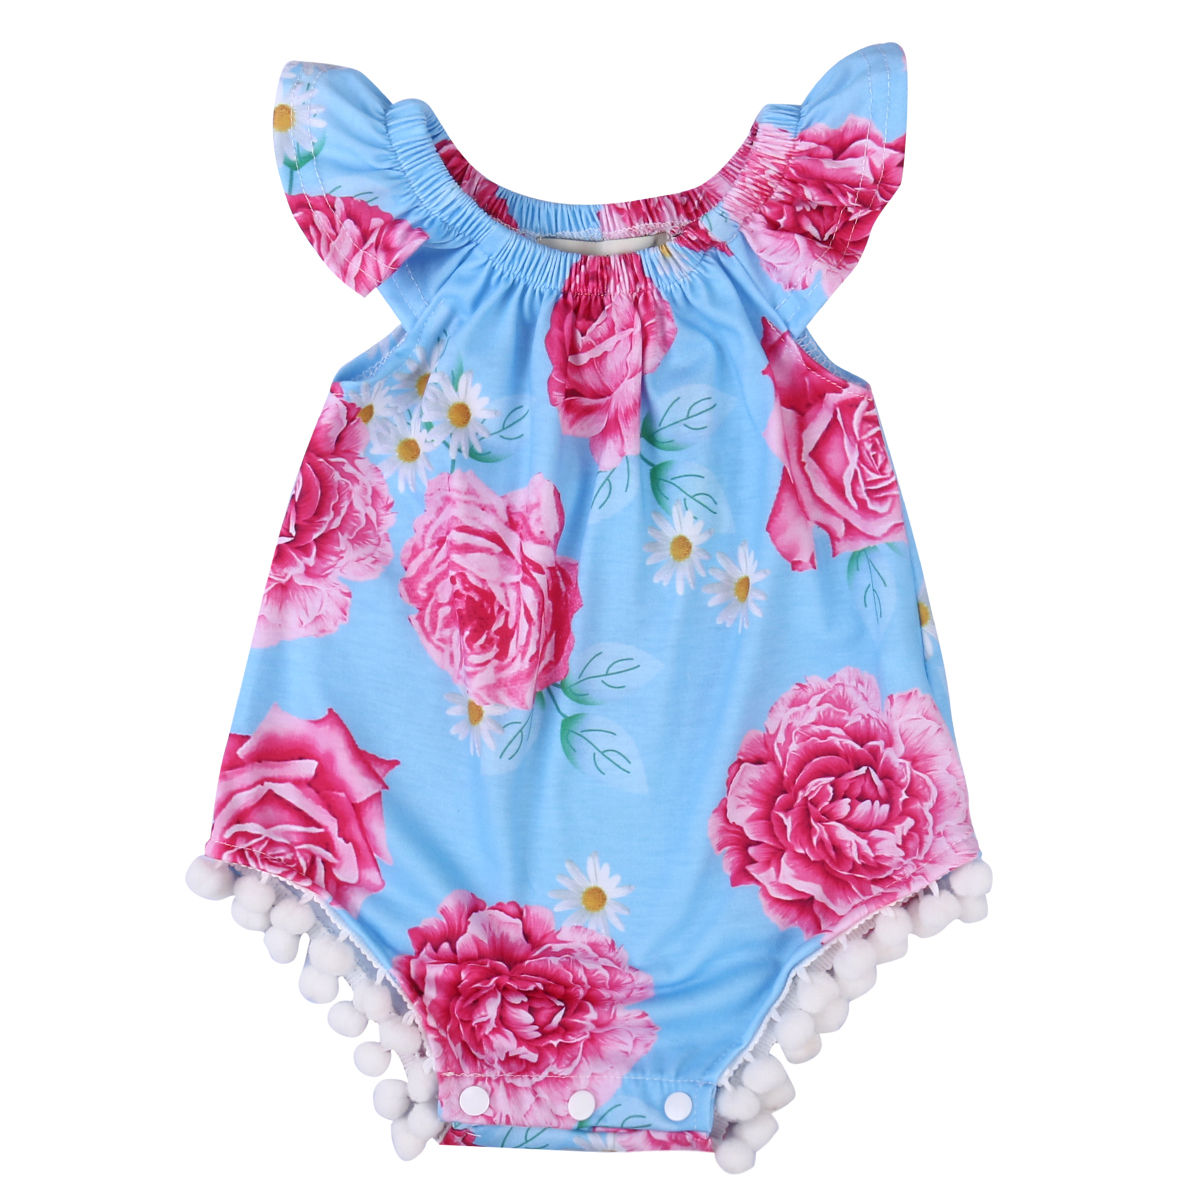 Lovely Newborn Baby Girl Clothes Floral Romper 2017 Summer Sleeveless Infant Bebes Toddler Kids Jumpsuit Outfit Sunsuit 0-24M summer newborn infant baby girl romper short sleeve floral romper jumpsuit outfits sunsuit clothes